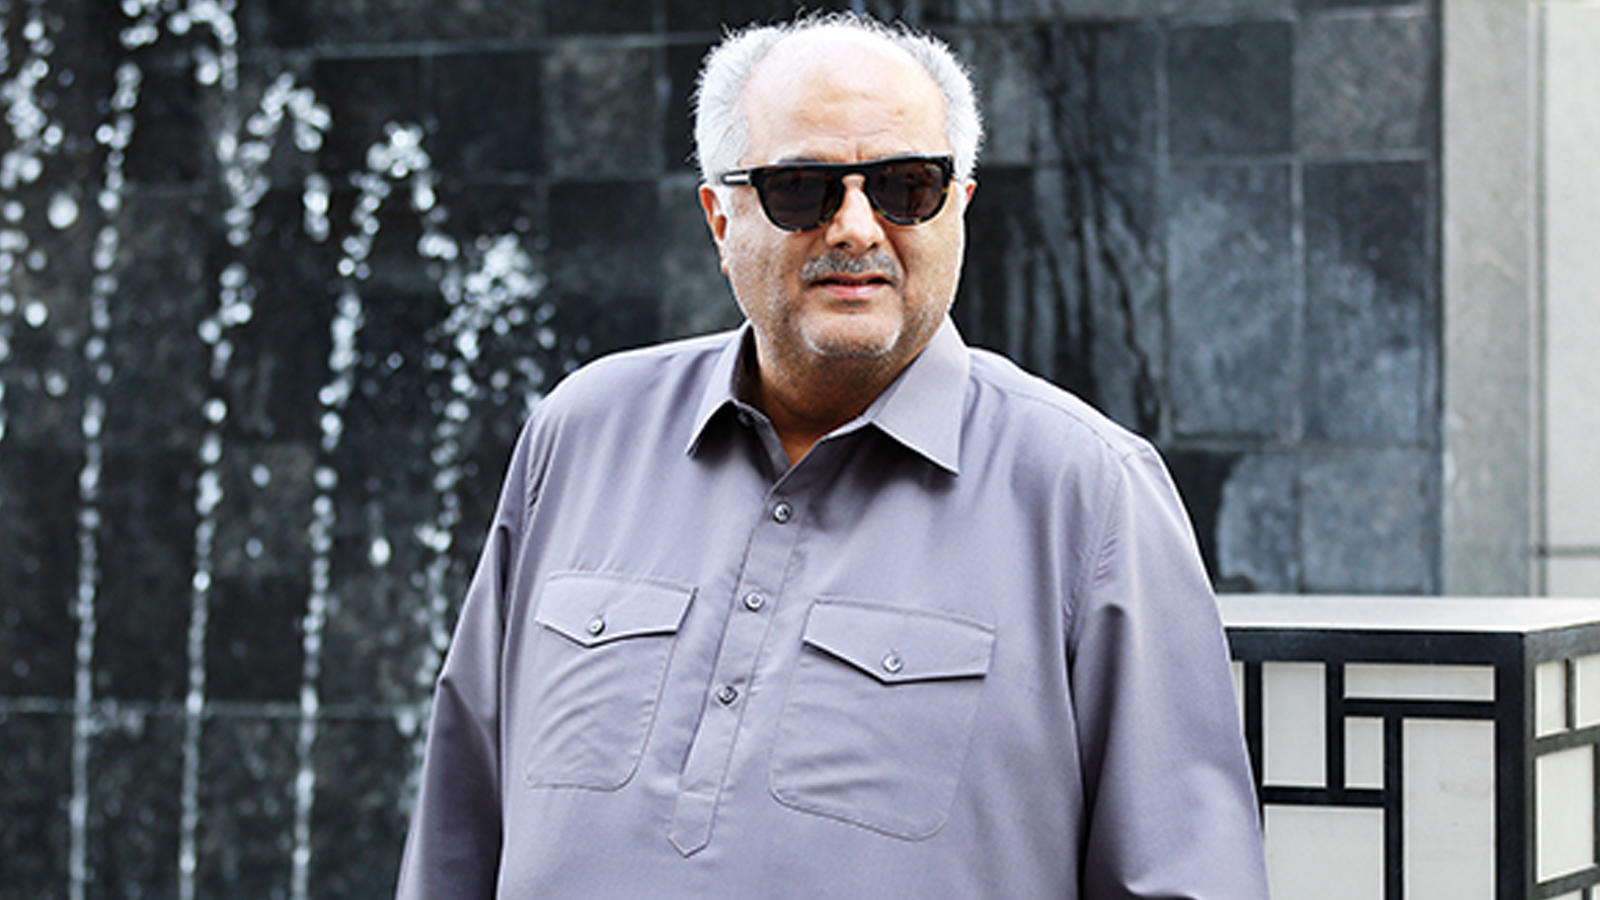 Boney Kapoor heads to UP again with film set in Lucknow